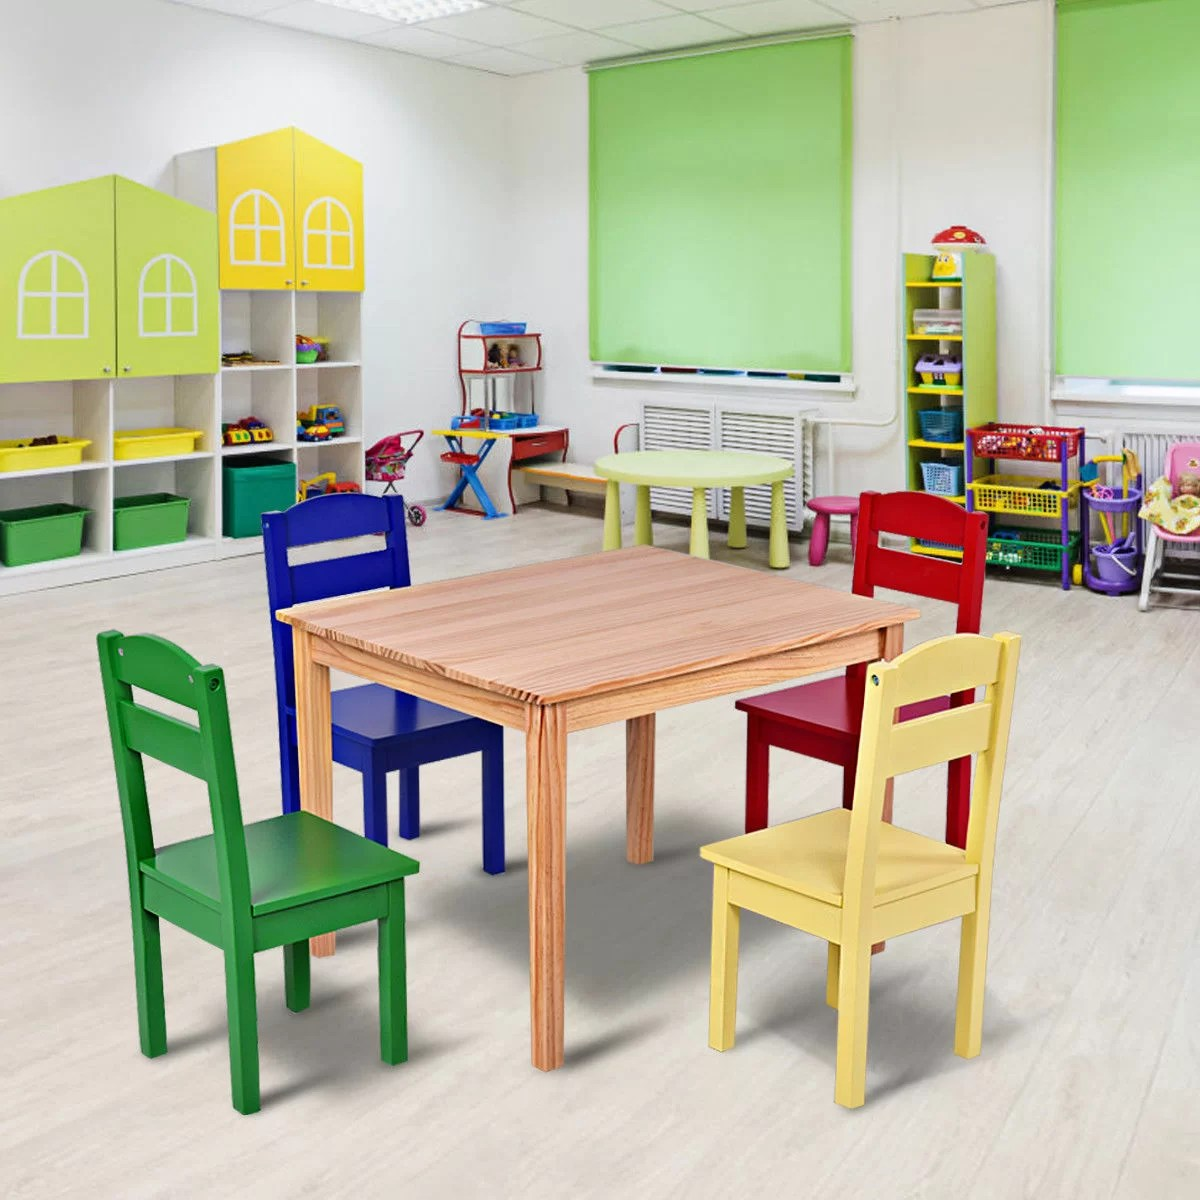 Kids Wood Table And Chairs Dickie Kids 5 Piece Writing Table And Chair Set